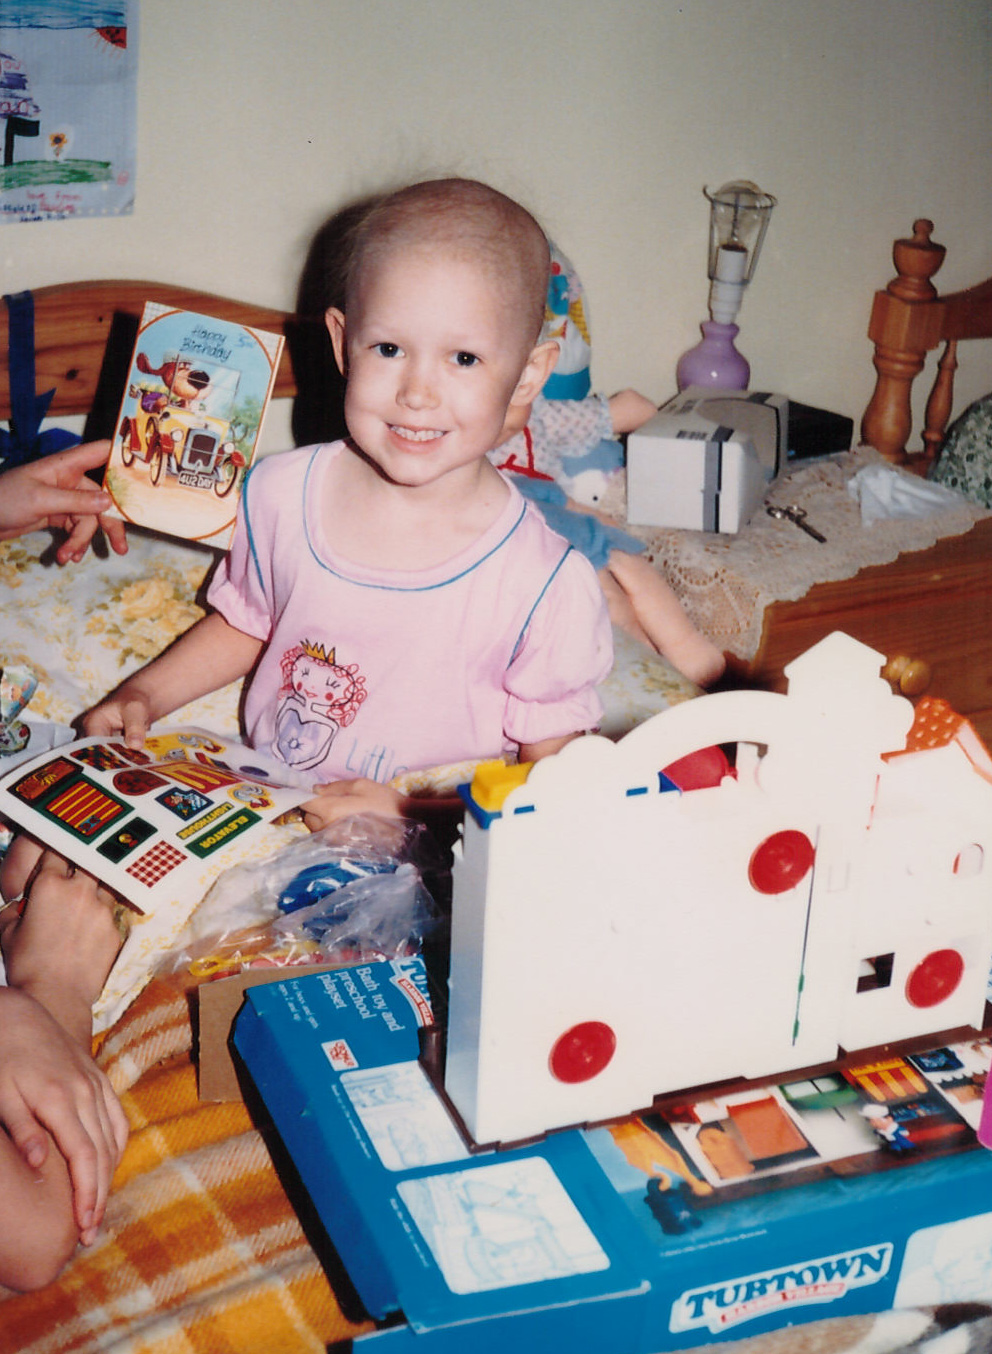 An Introduction – Why write about surviving childhood cancer?